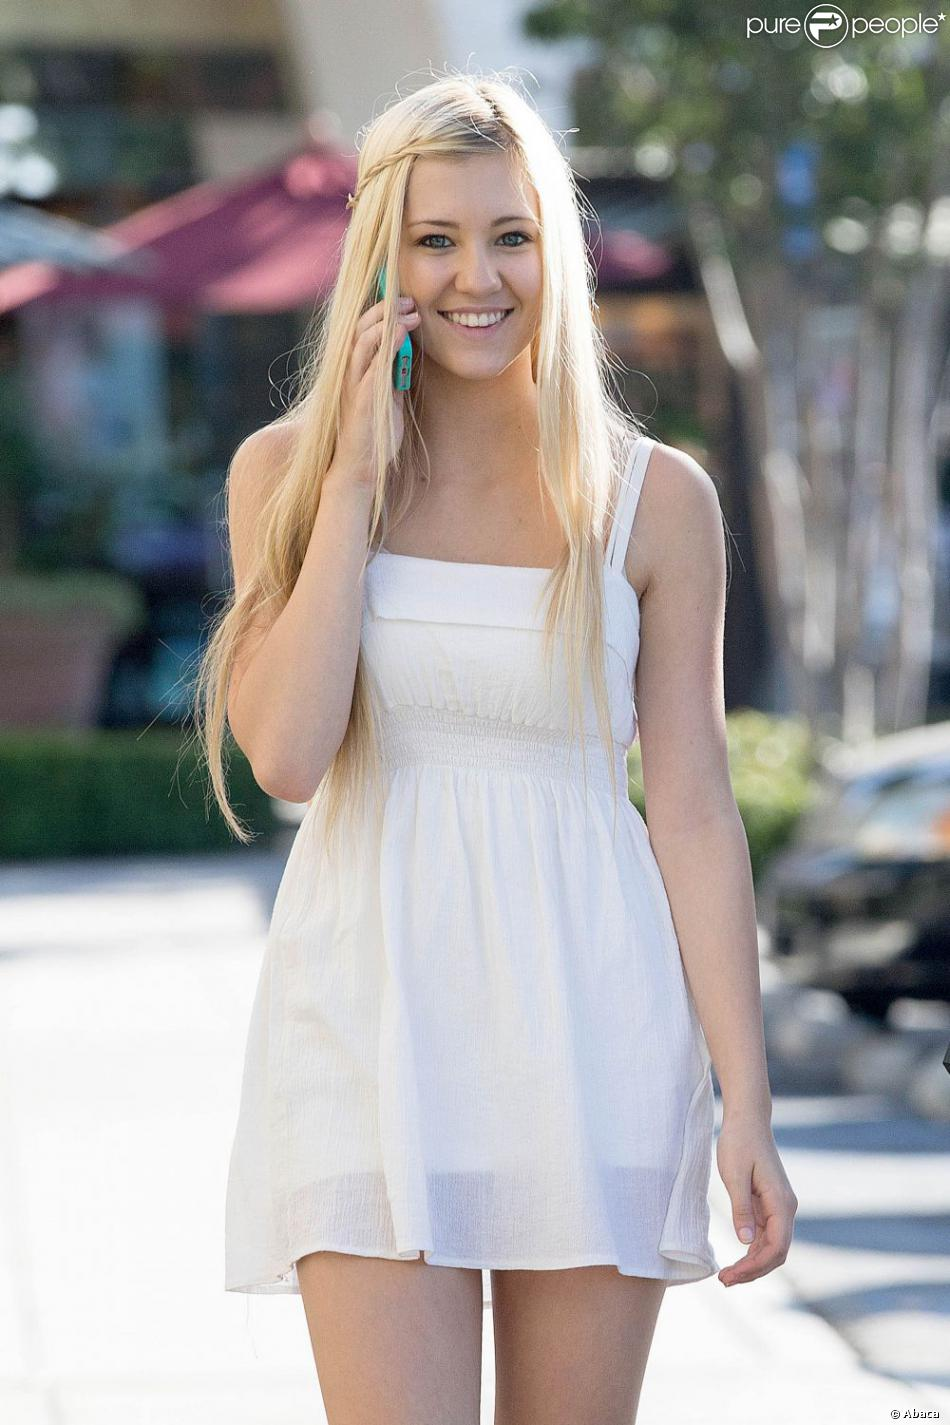 Ava Sambora   Copie conforme de sa m    re Heather Locklear  elle a     Ava Sambora  la fille d Heather Locklear  dans les rues de Calabasas